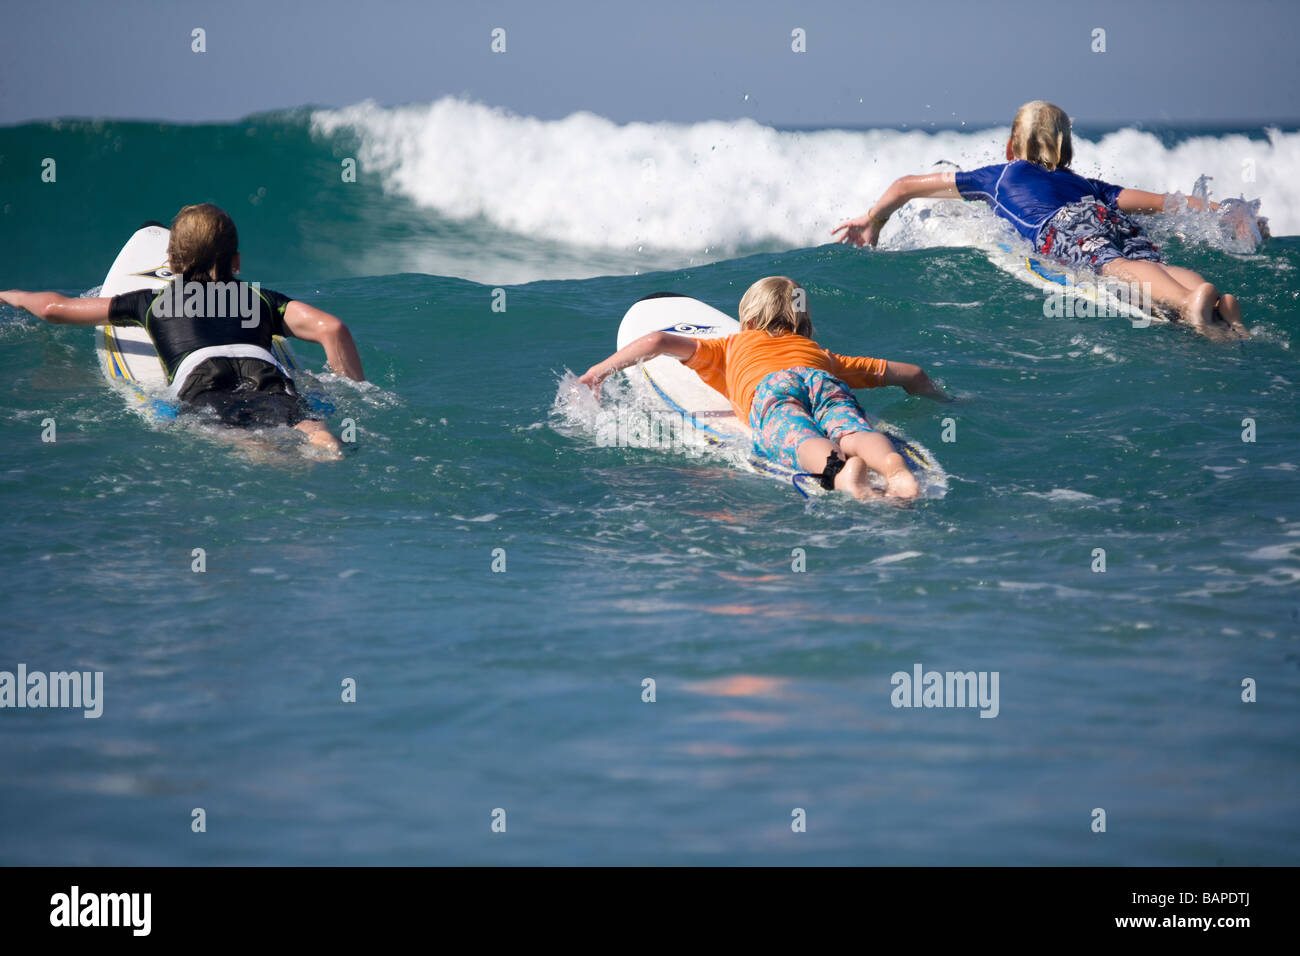 Surf en Mt. Mauganui Nouvelle-zélande Photo Stock